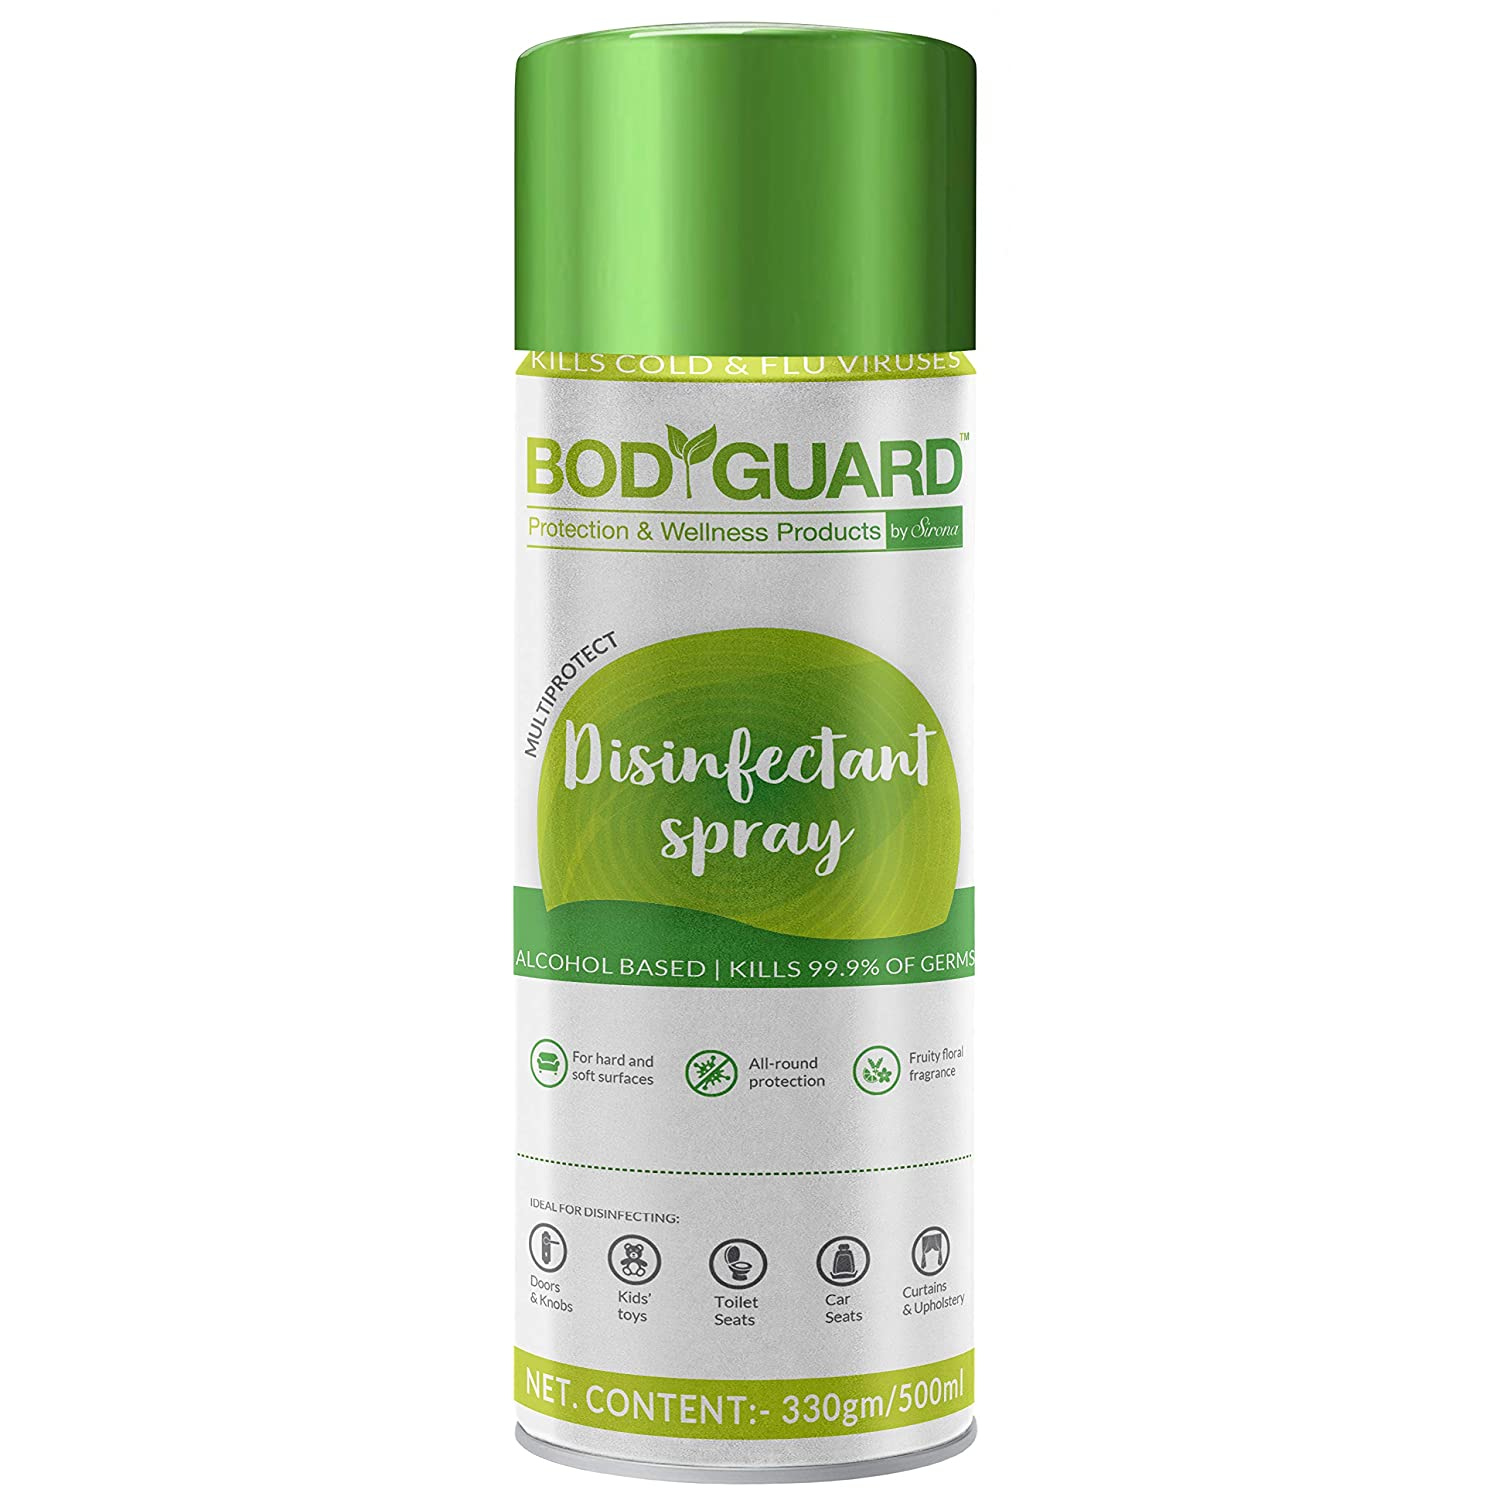 BodyGuard Disinfectant Sanitizer Spray for Multi-Surfaces, Alcohol Based - 500 ml